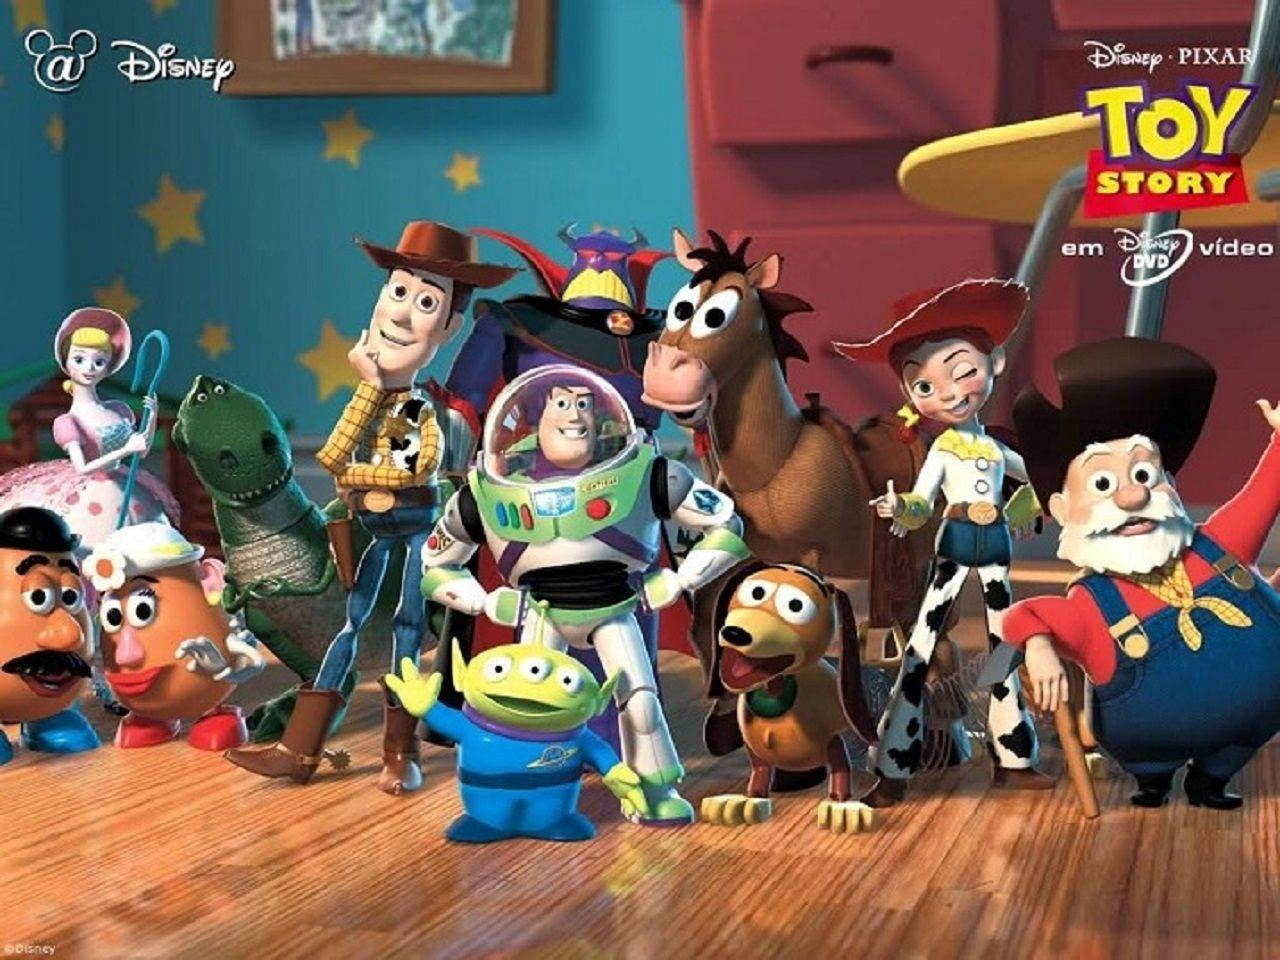 43 Toy Story HD Wallpapers | Background Images - Wallpaper Abyss